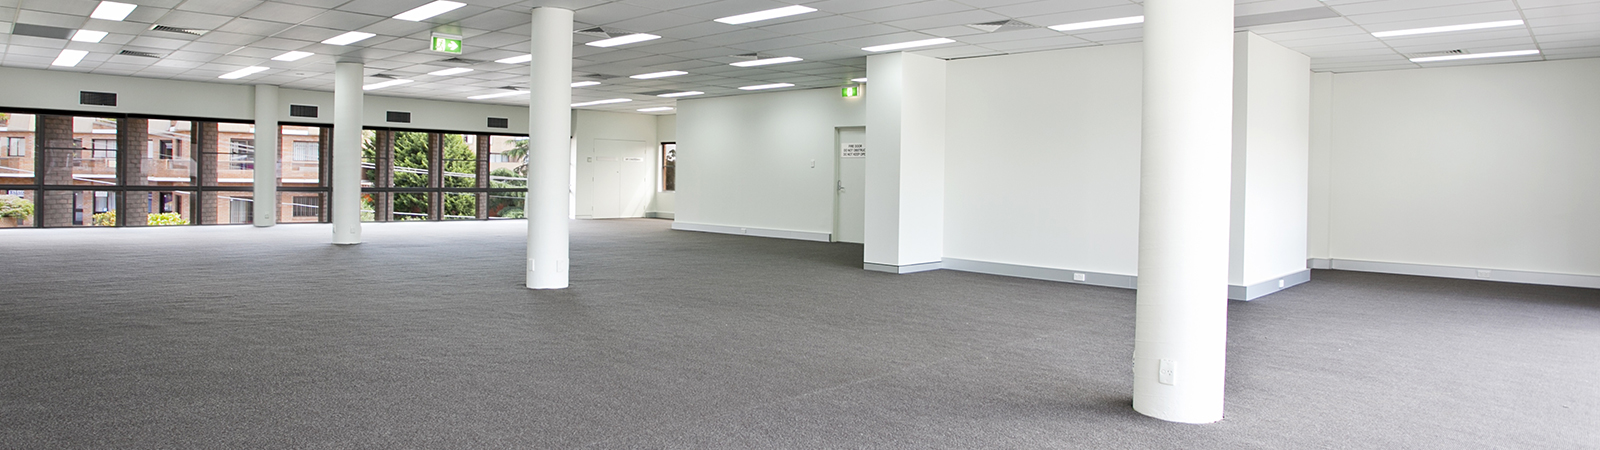 Howard Property Services - Commercial Property Services